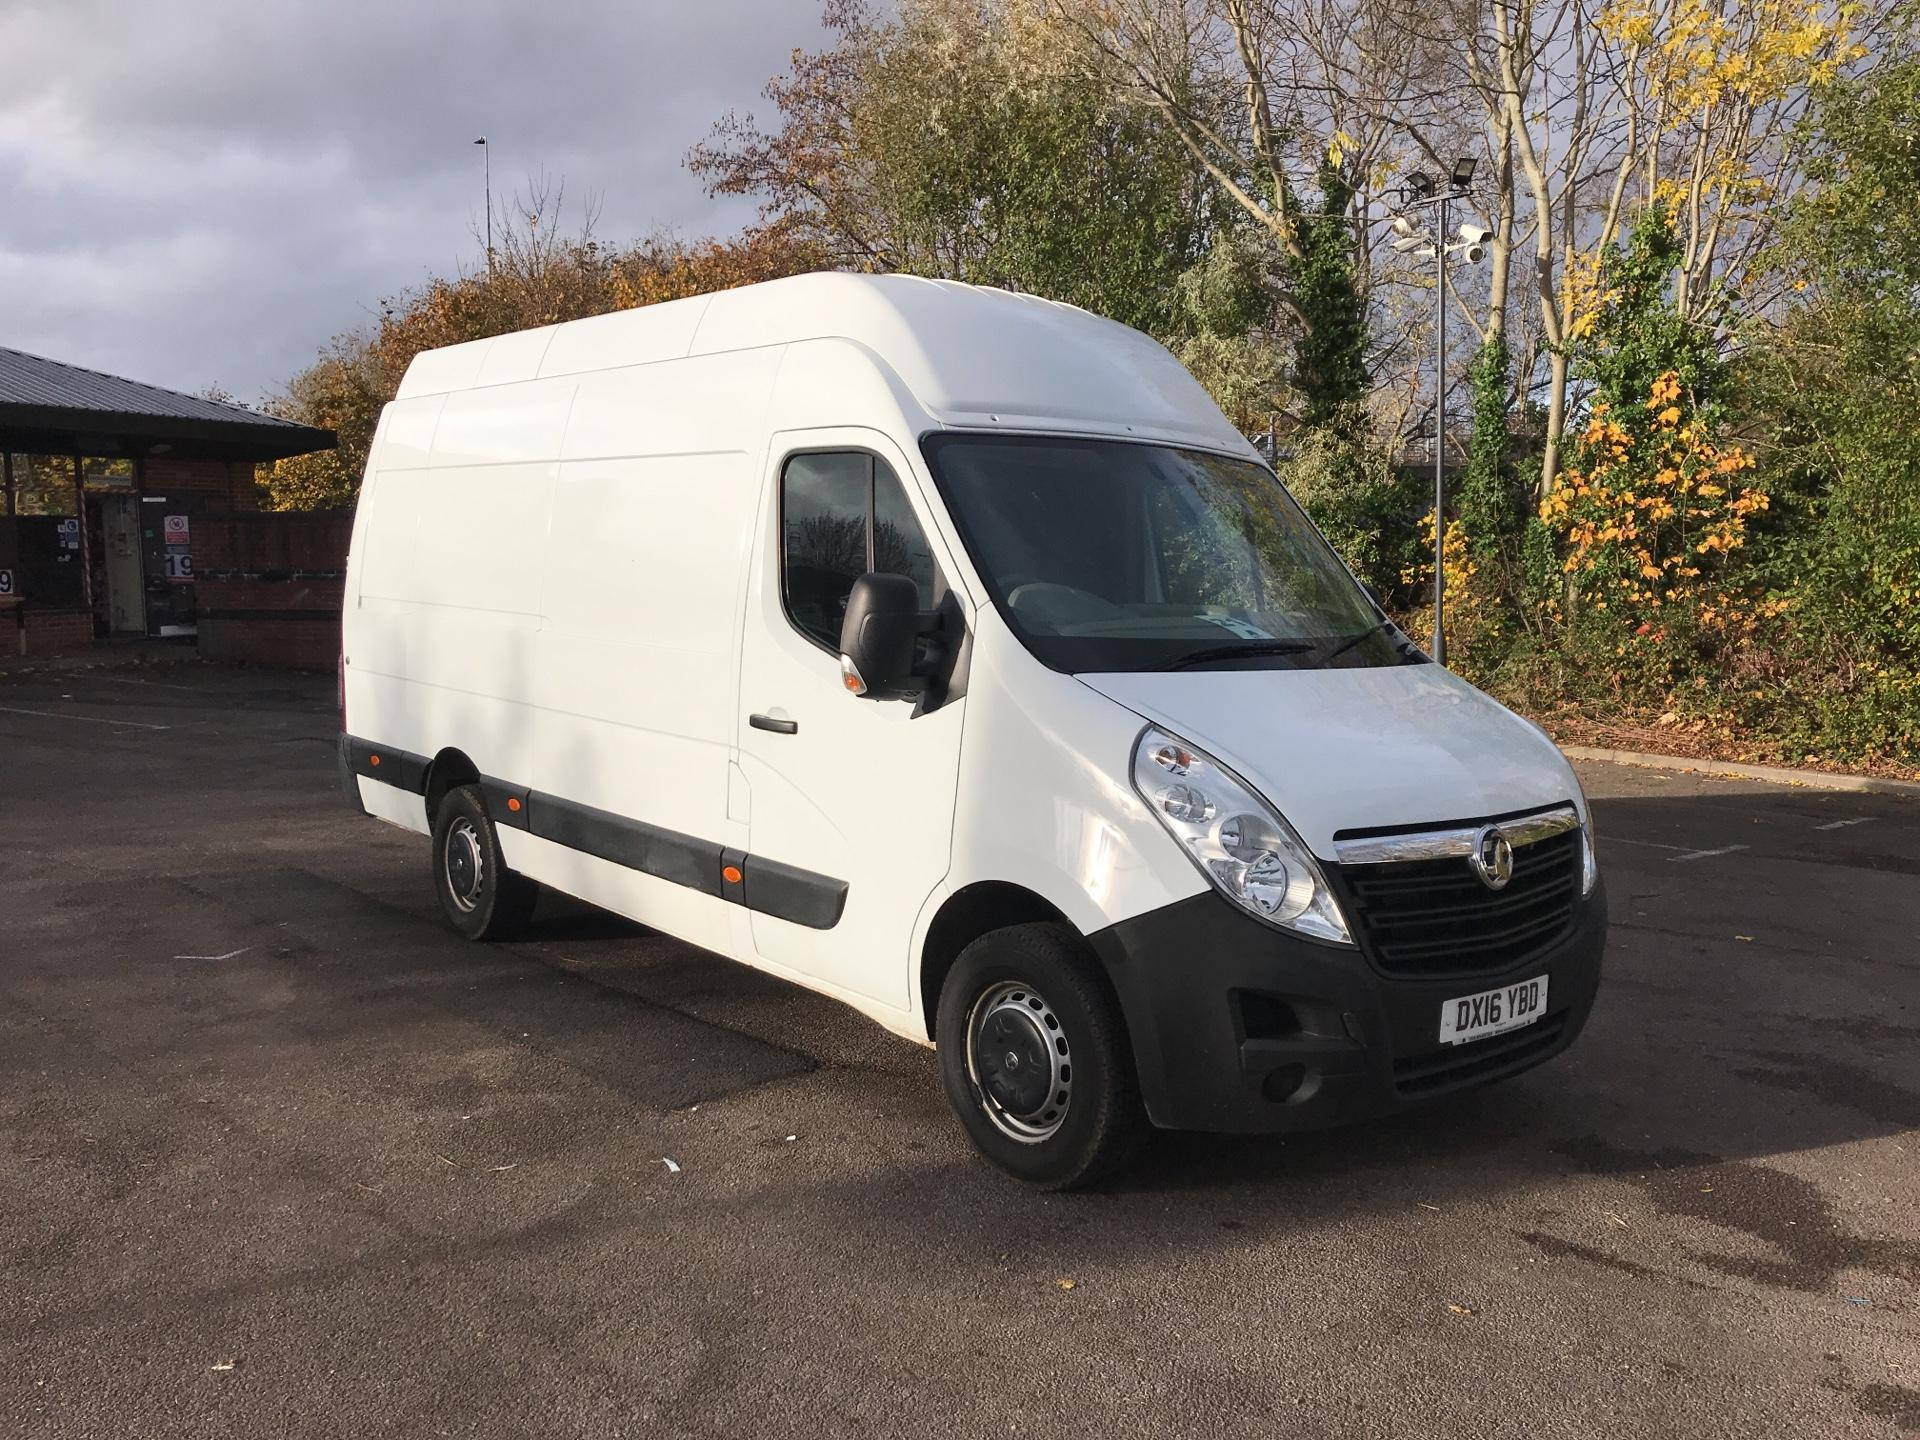 2016 Vauxhall Movano 35 L3 H3 125PS EURO 5 *Value Range Van Condition Reflected in Price* (DX16YBD)